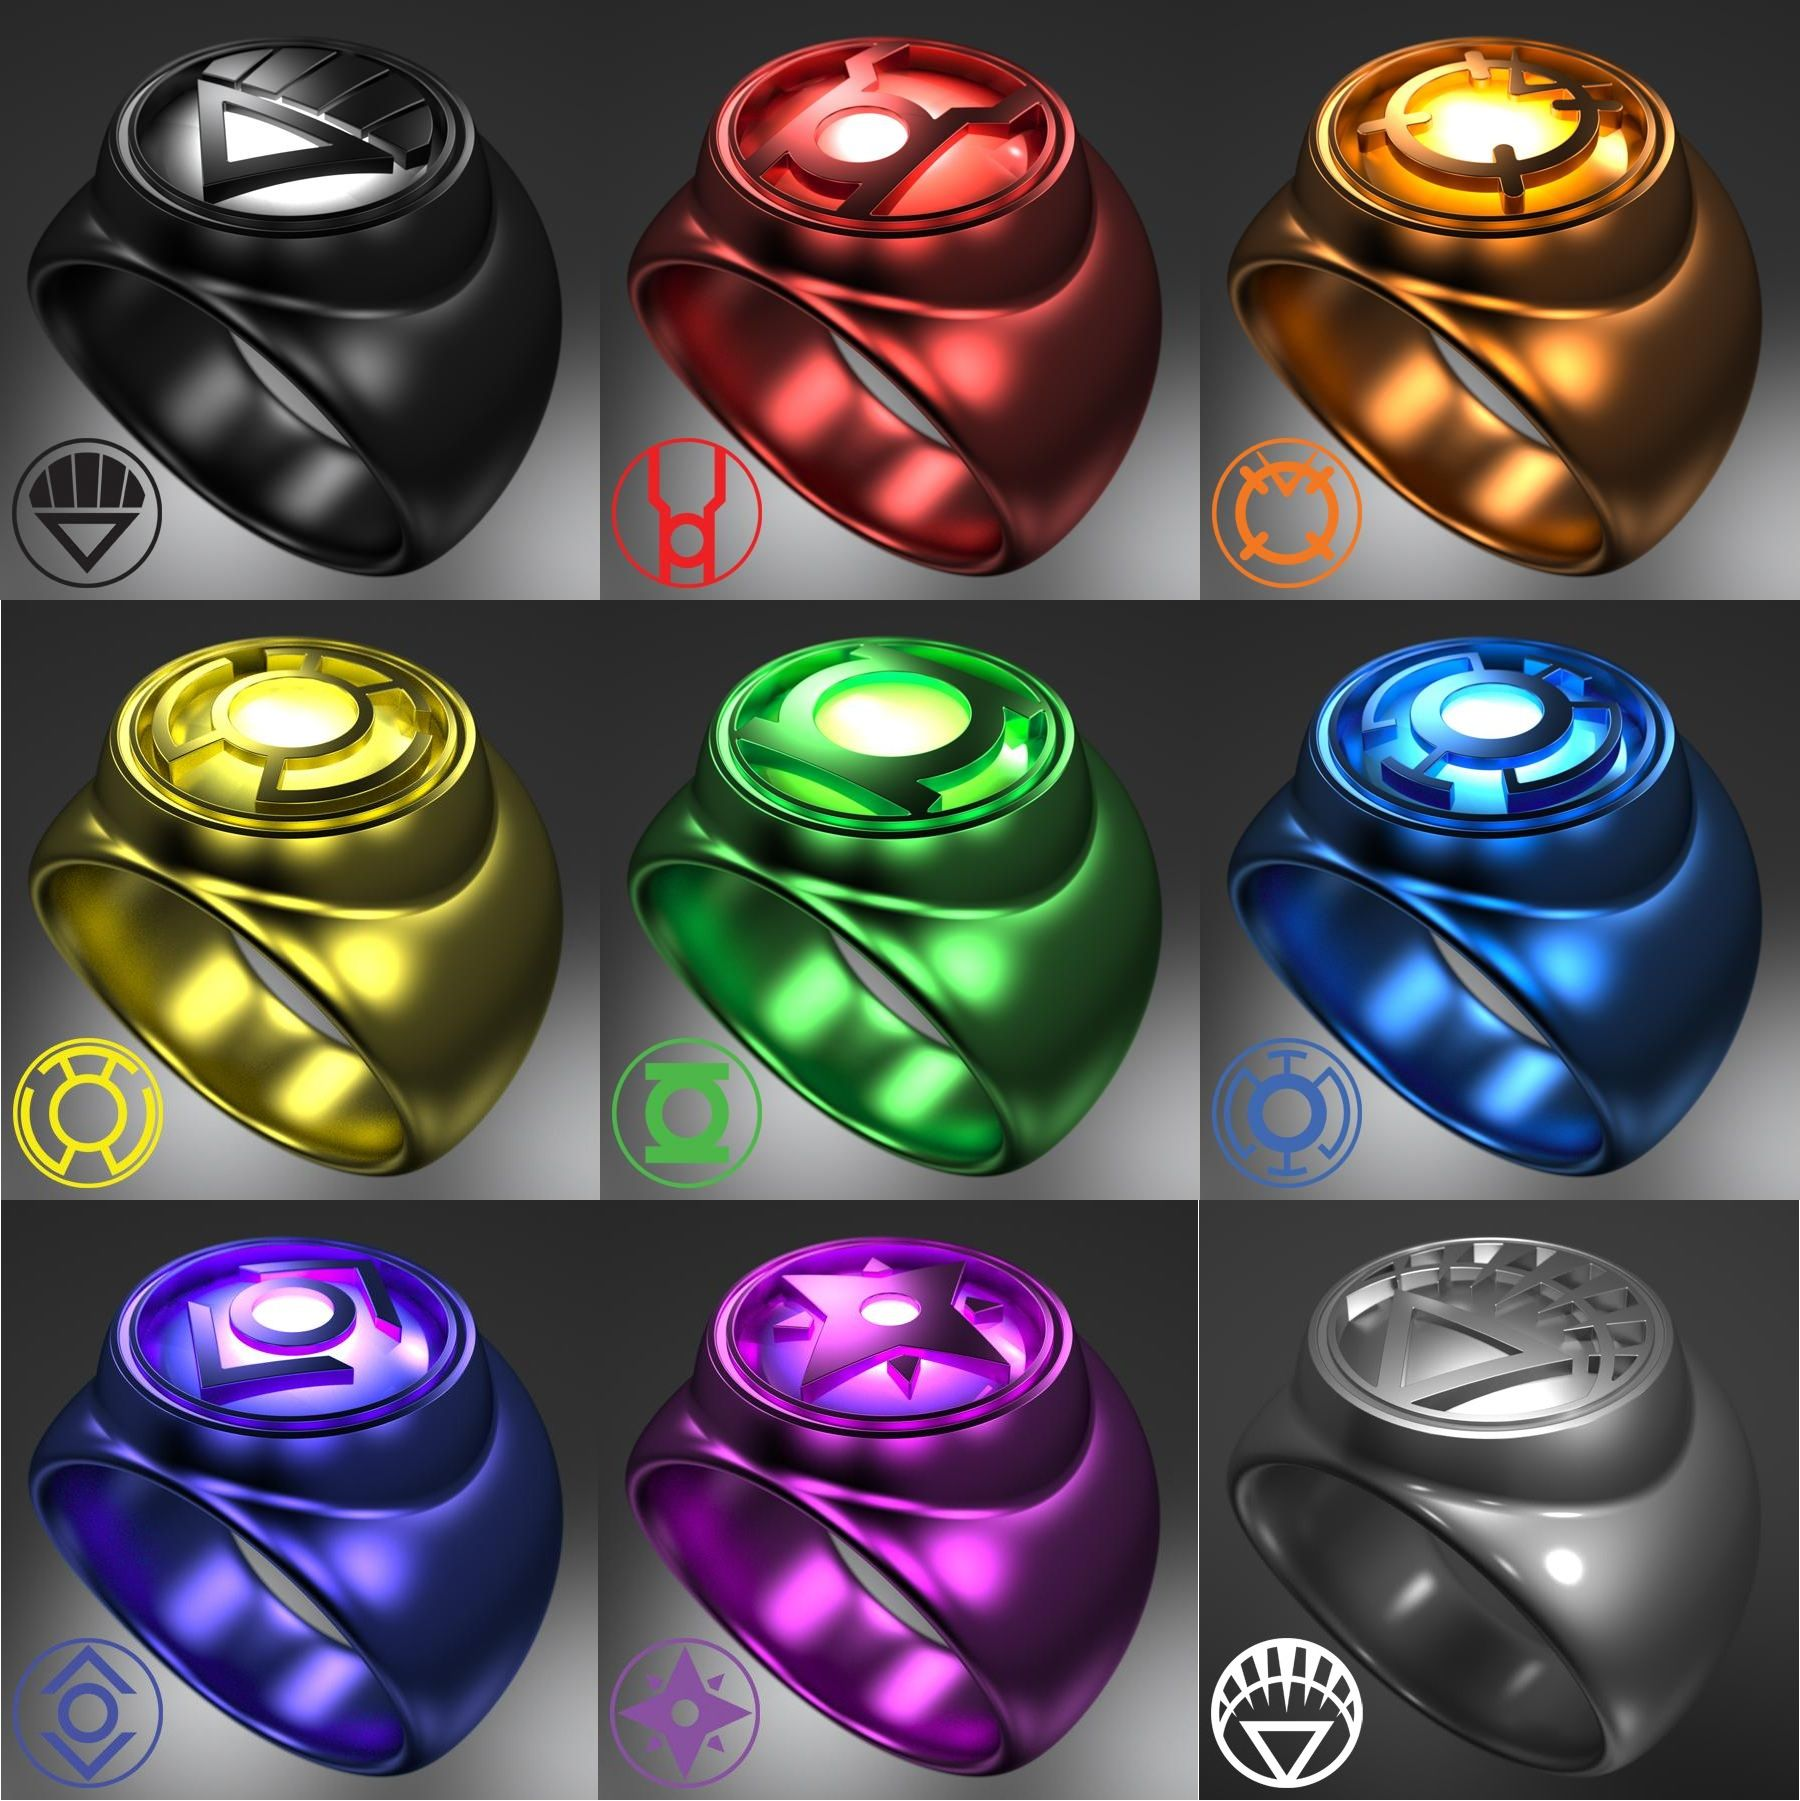 Blackest night lantern corp power rings dc blackest night blackest night lantern corp power rings dc blackest night the greatest remake of an entire comic universe ever pinterest universe and comic biocorpaavc Gallery